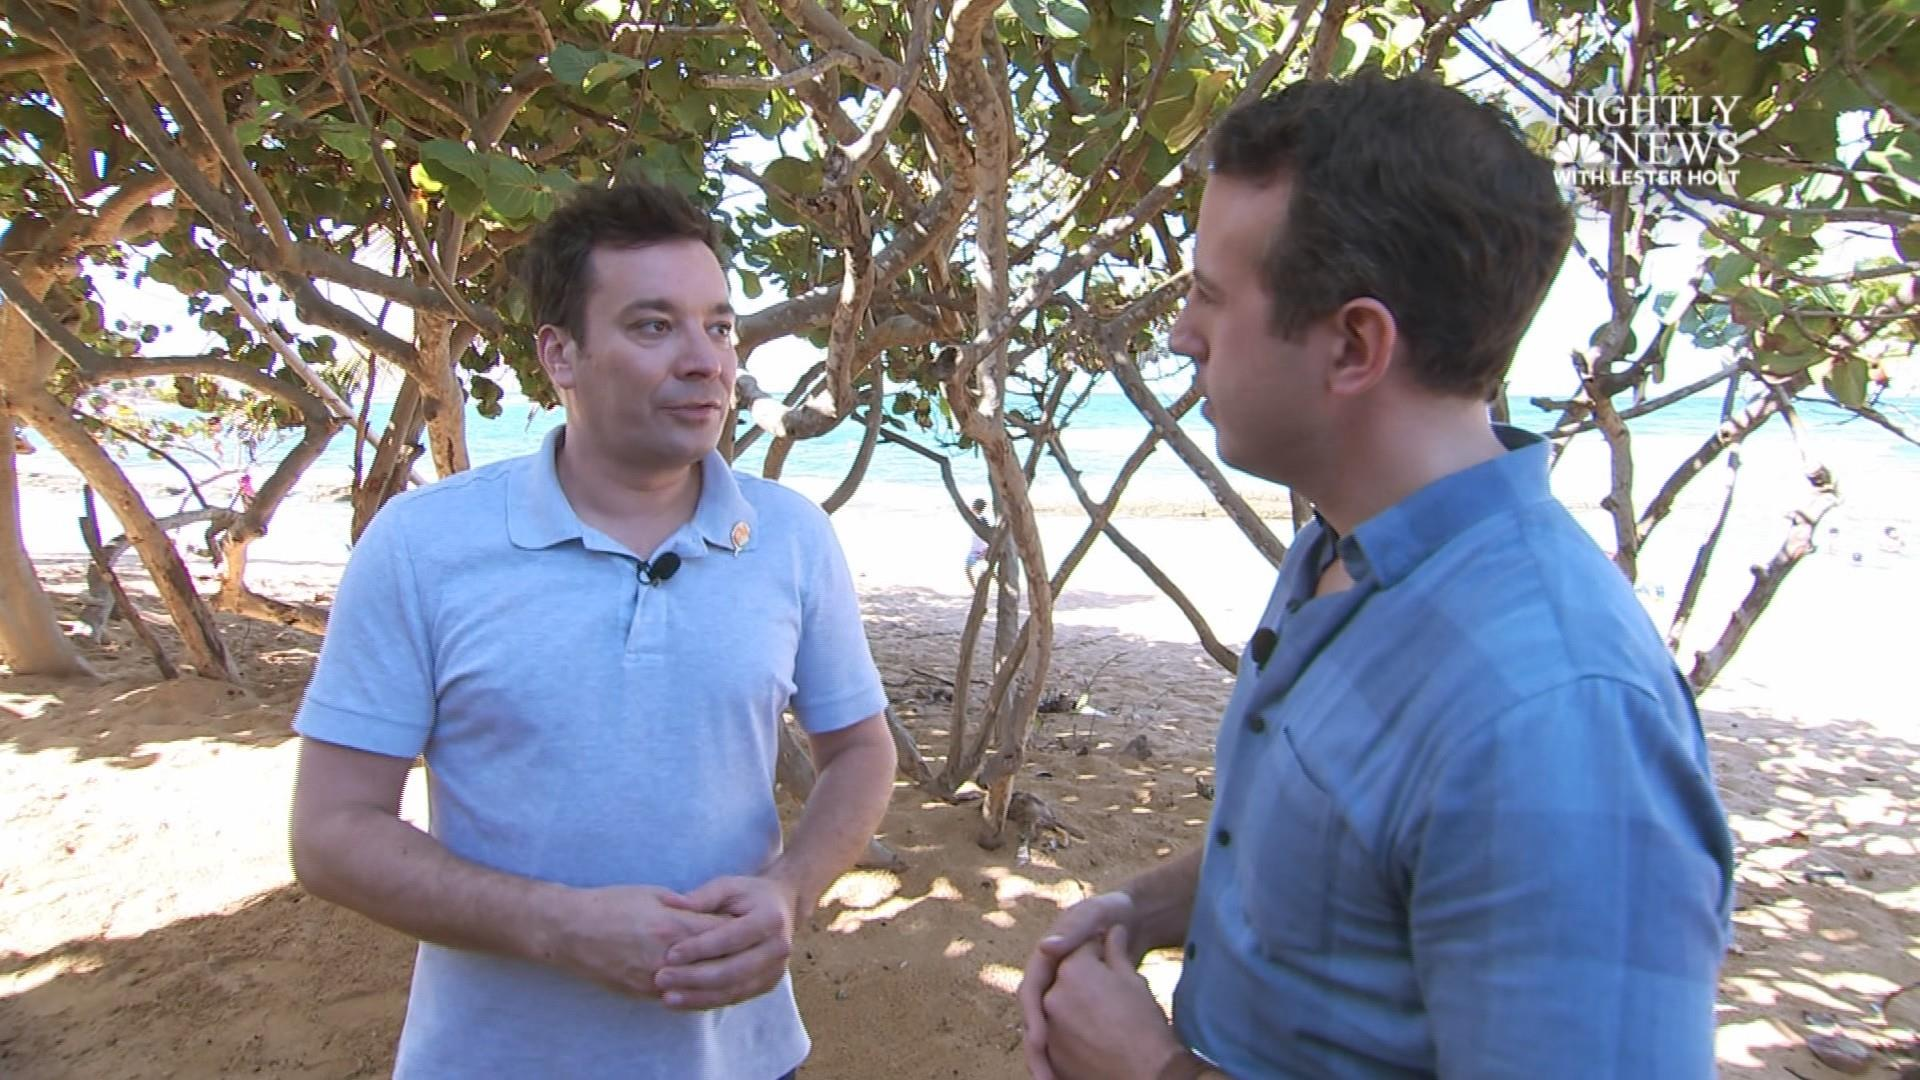 American detained in ISIS territory in Syria speaks to NBC's Richard Engel